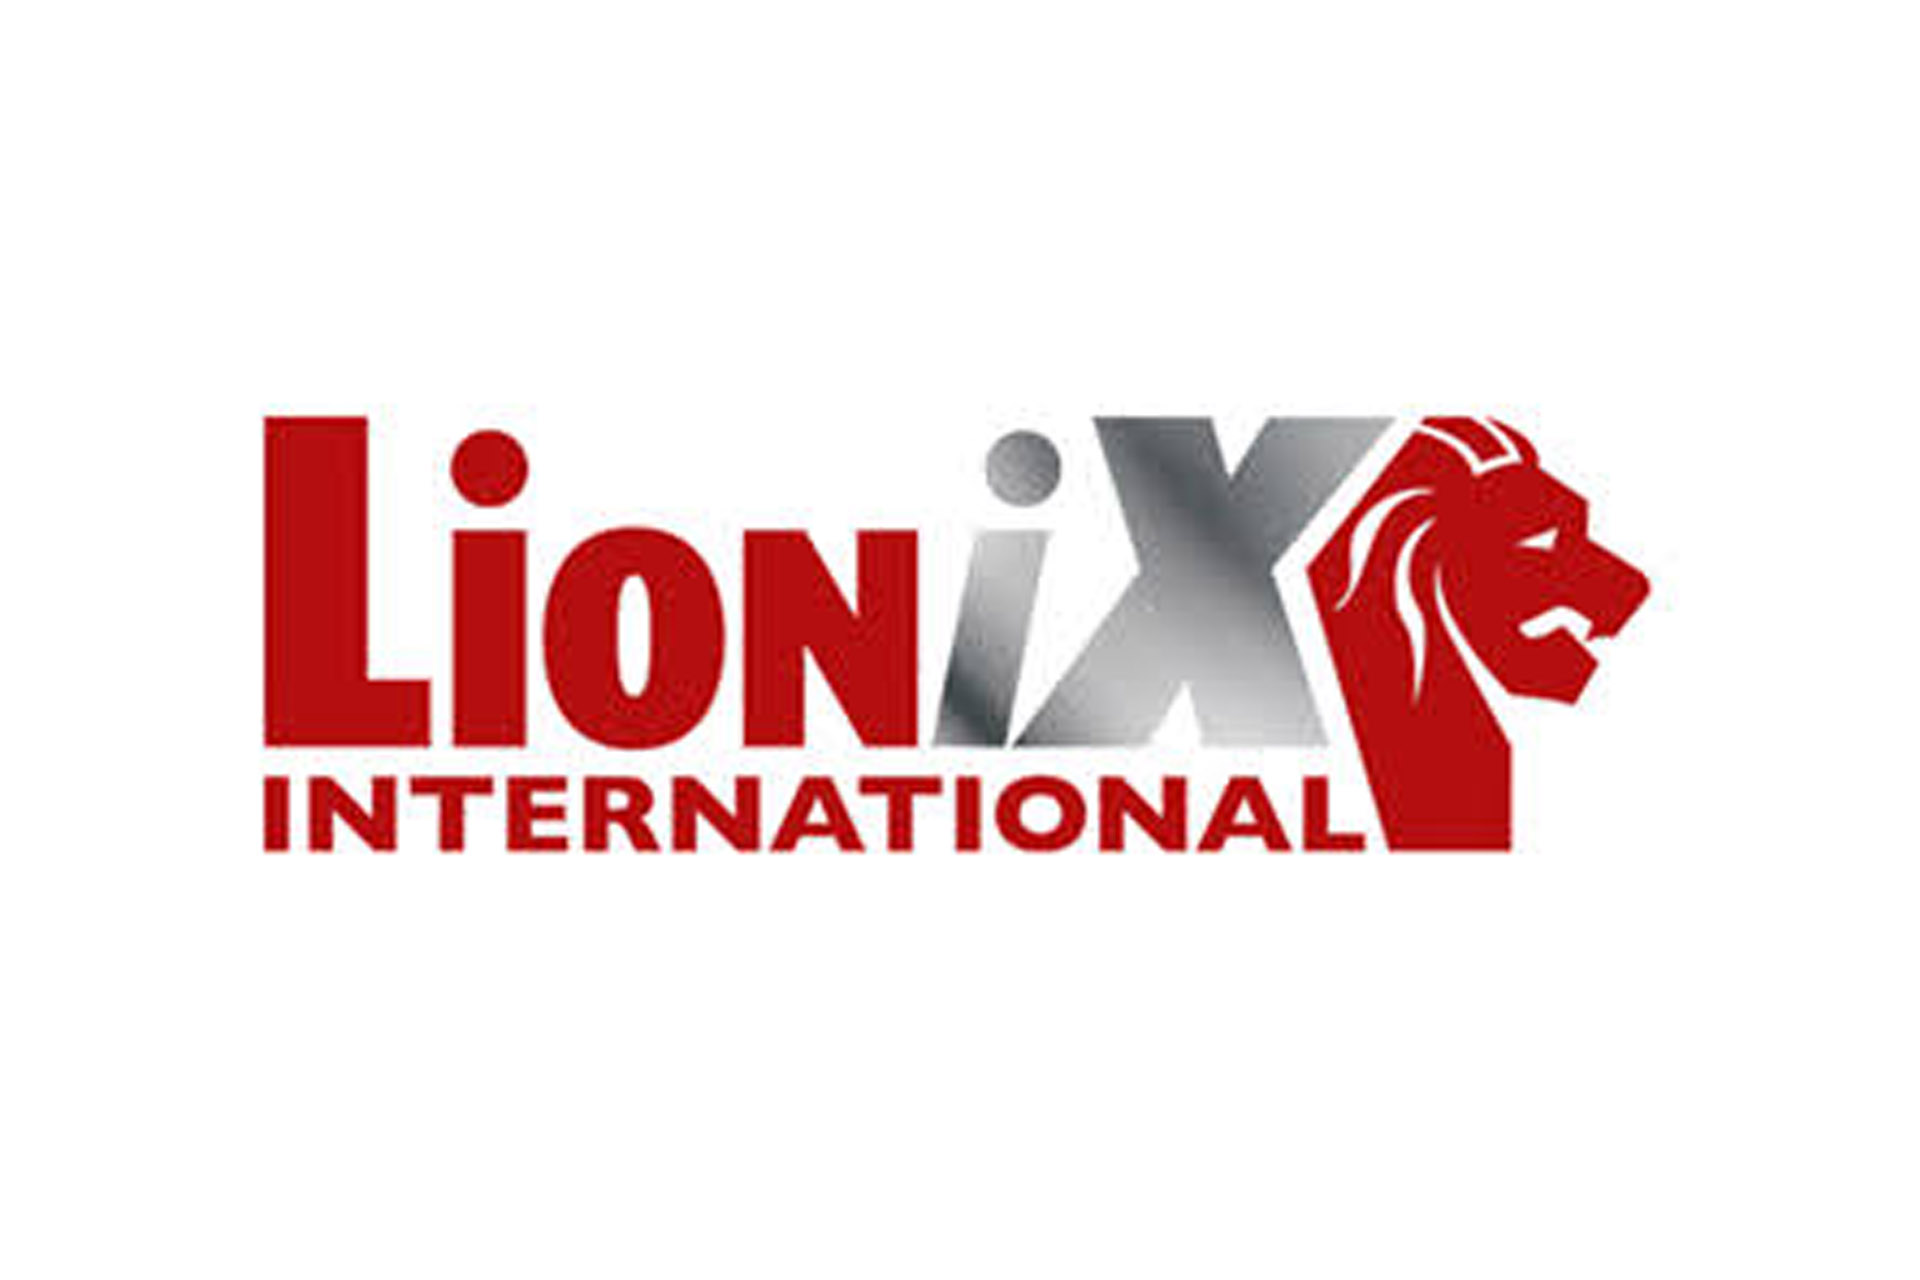 LioniX International